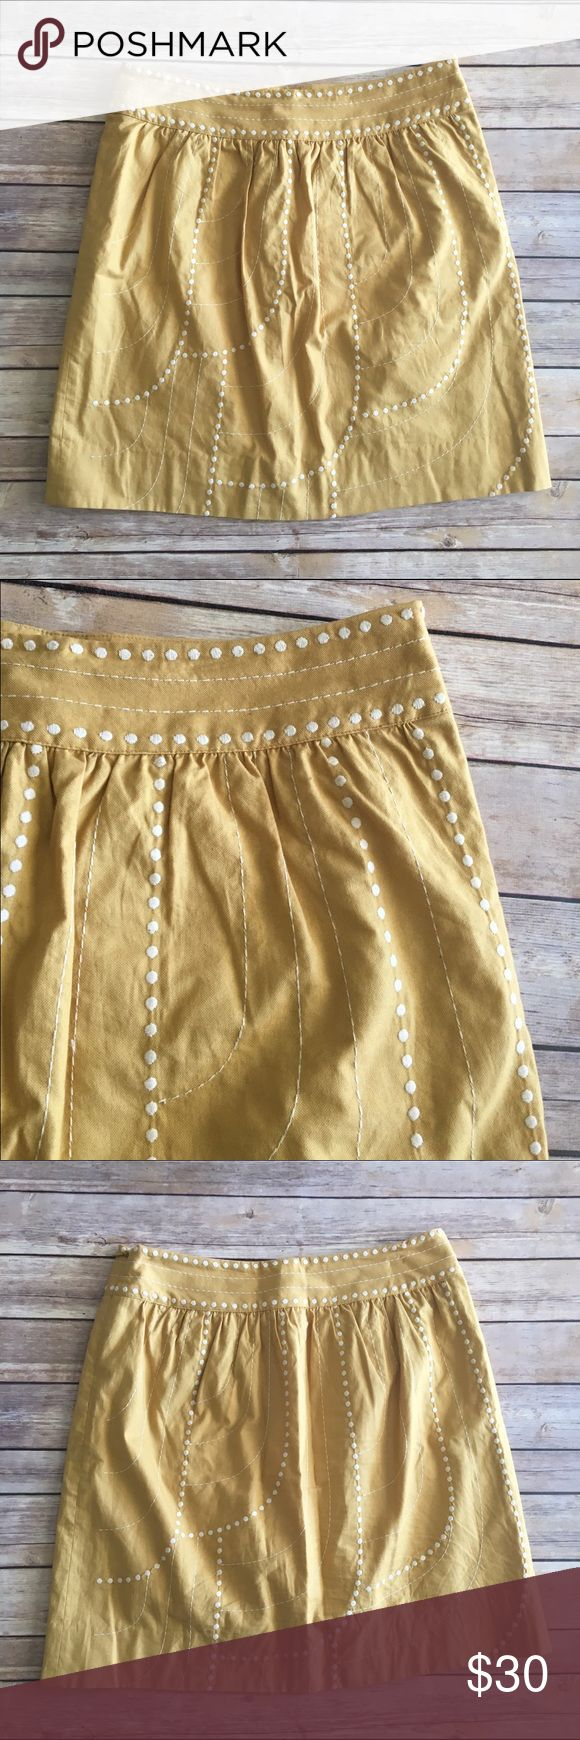 Floreat Mustard yellow skirt with cream embroidery Floreat Anthropologie mustard yellow a-line skirt with scallop embroidery. Good clndion. Measures about 33 inches around the waist and is about 19 inches long. Anthropologie Skirts A-Line or Full